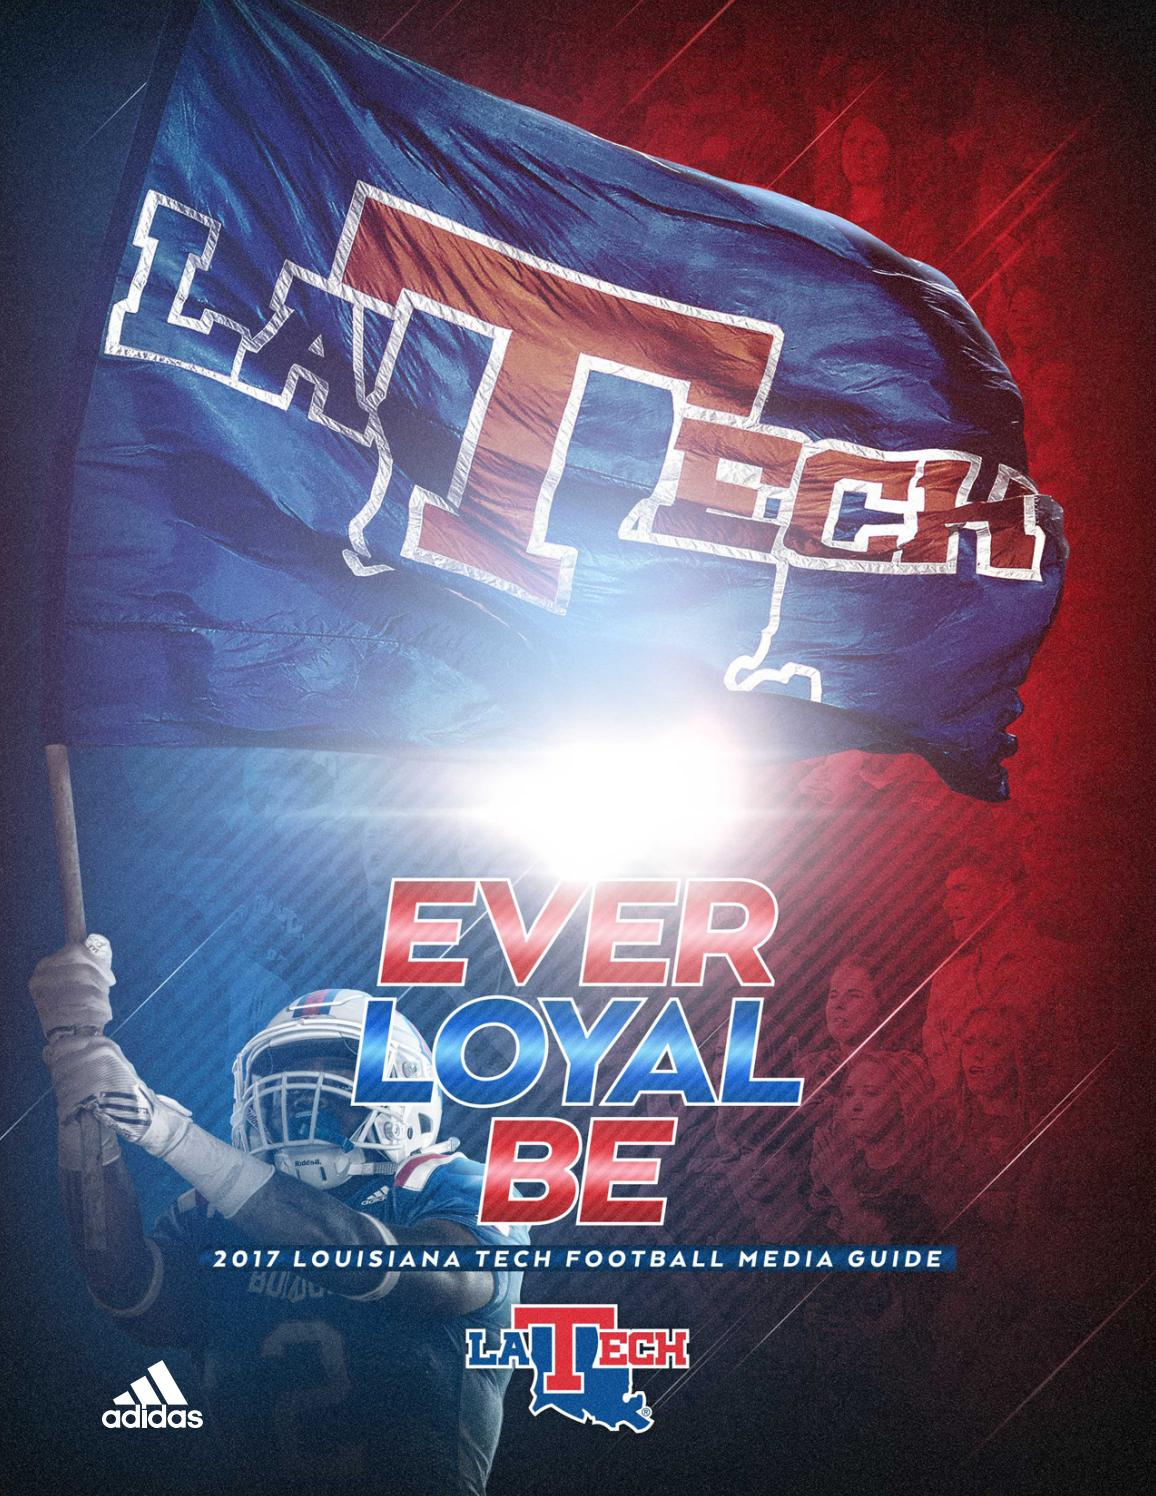 f6280be953d 2017 Louisiana Tech Football Media Guide by Louisiana Tech Athletics - issuu